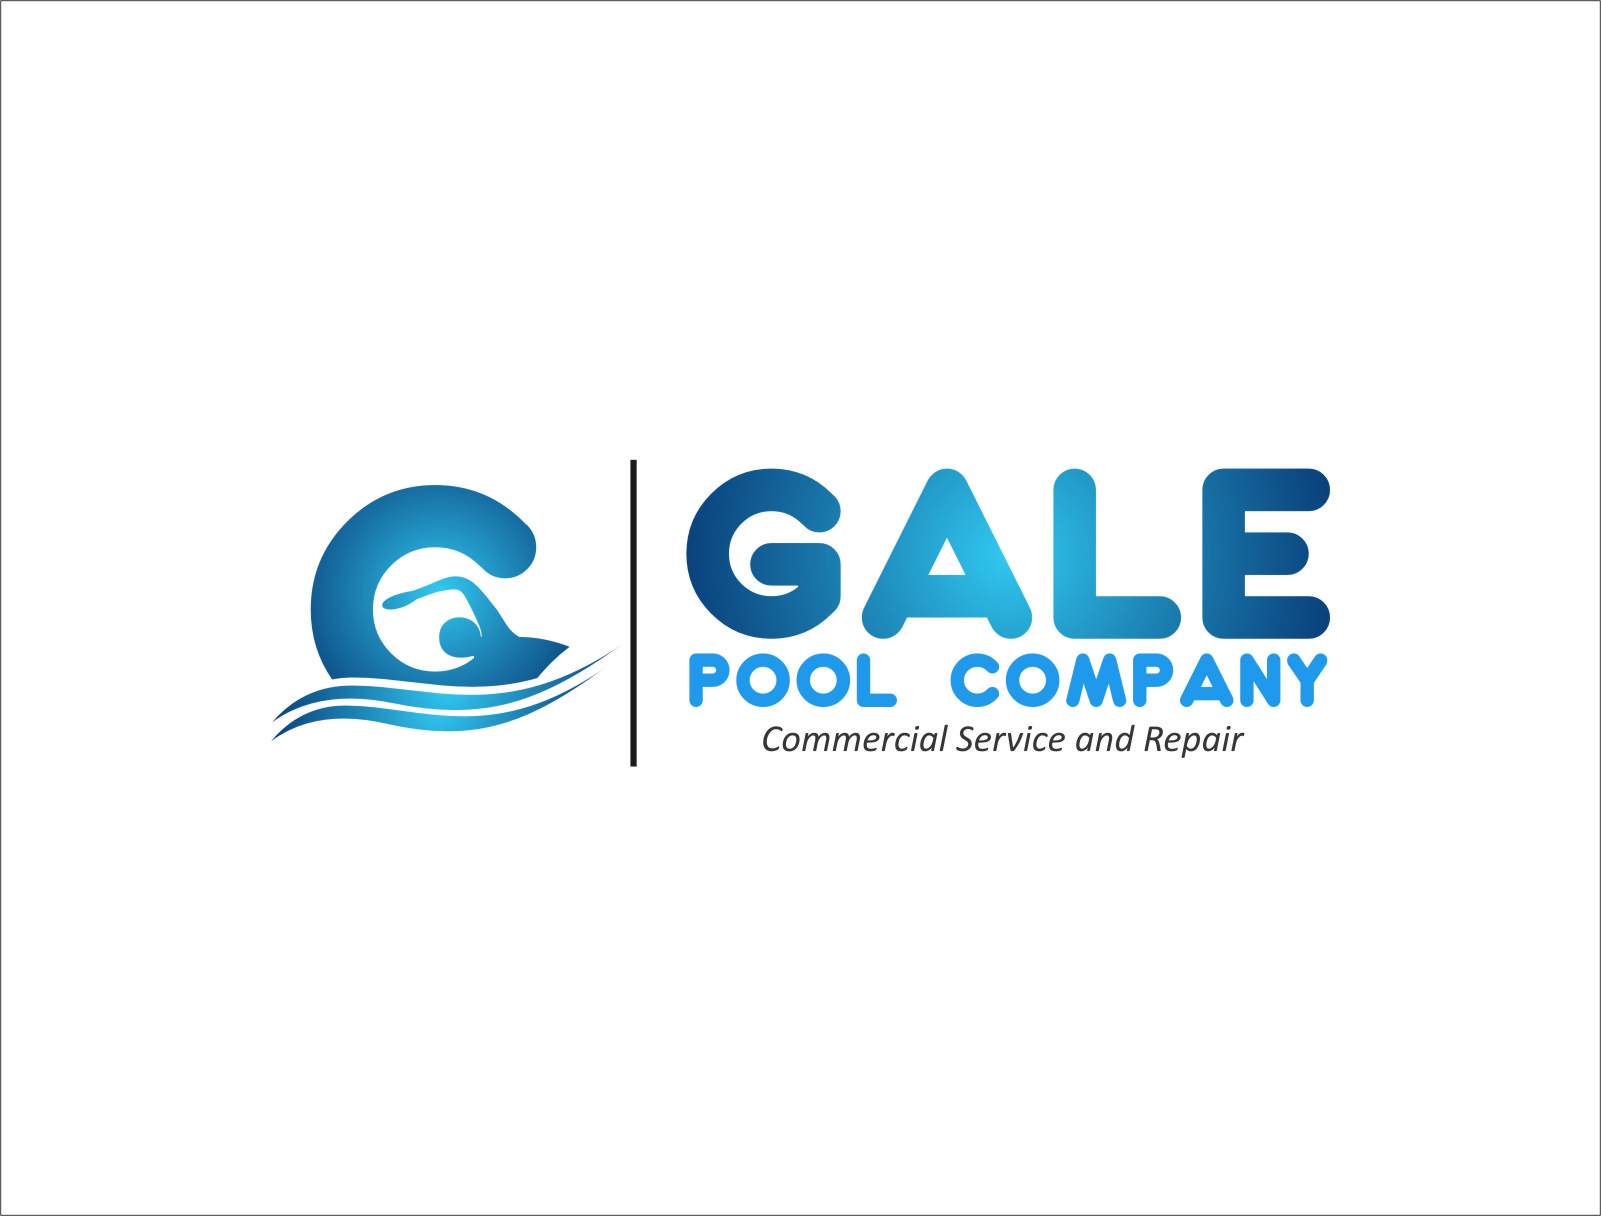 Logo Design by Ngepet_art - Entry No. 86 in the Logo Design Contest Imaginative Logo Design for Gale Pool Company.